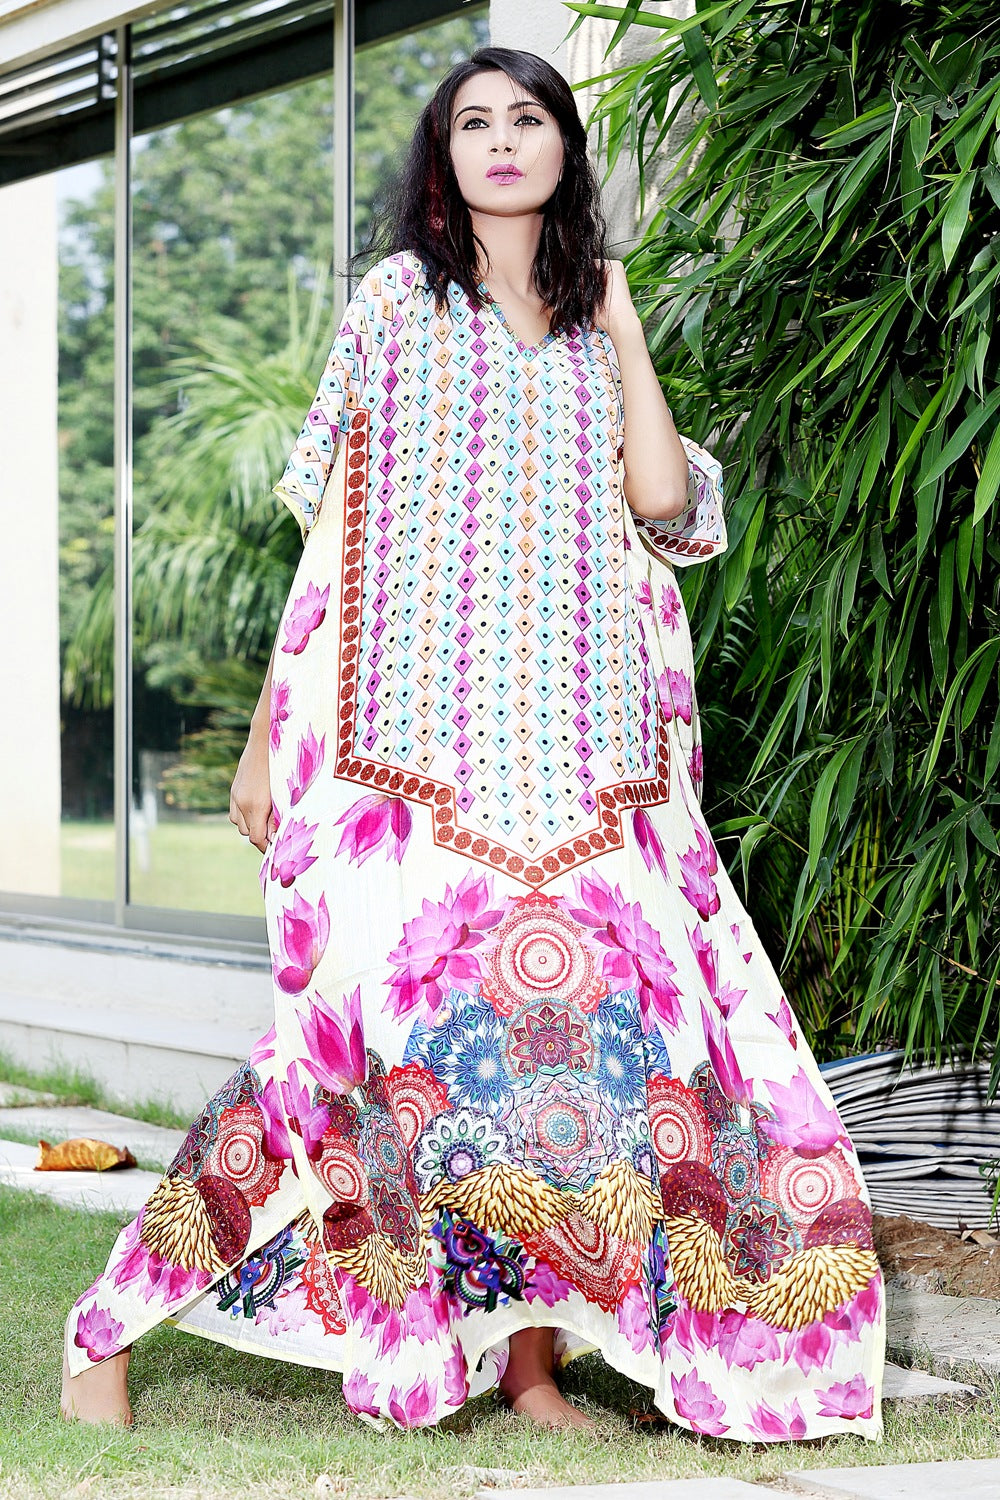 Lotus print with Geometric shapes over Long Silk Kaftan gown for Vogue and Iconic Look caftan - Silk kaftan